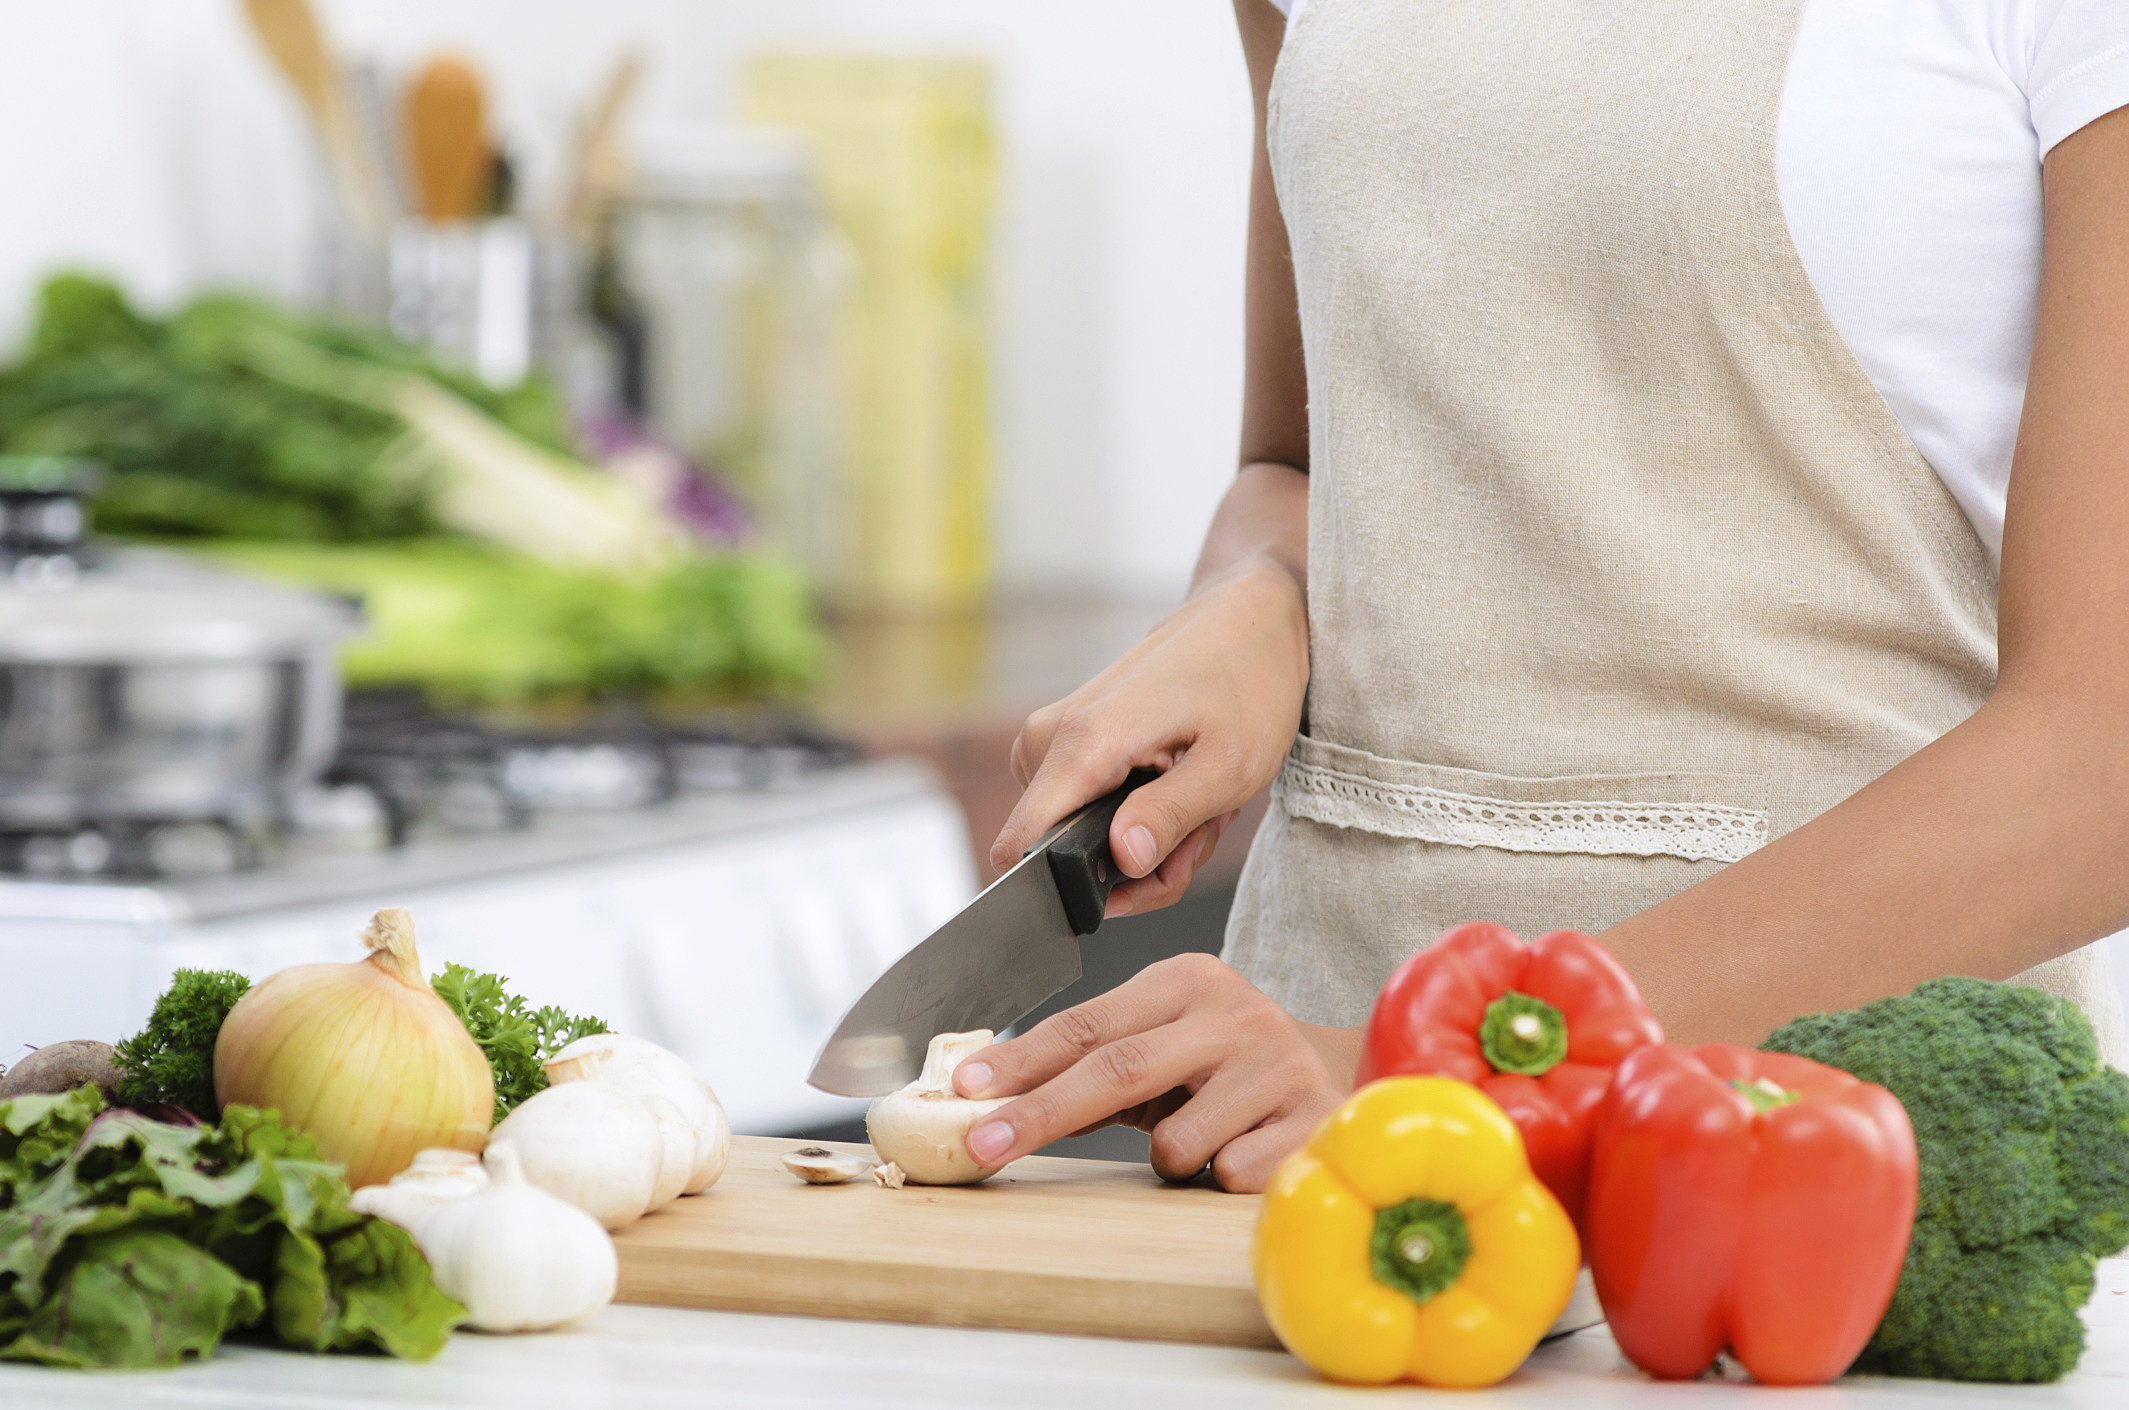 Are People Really Washing Their Veggies With Bleach?